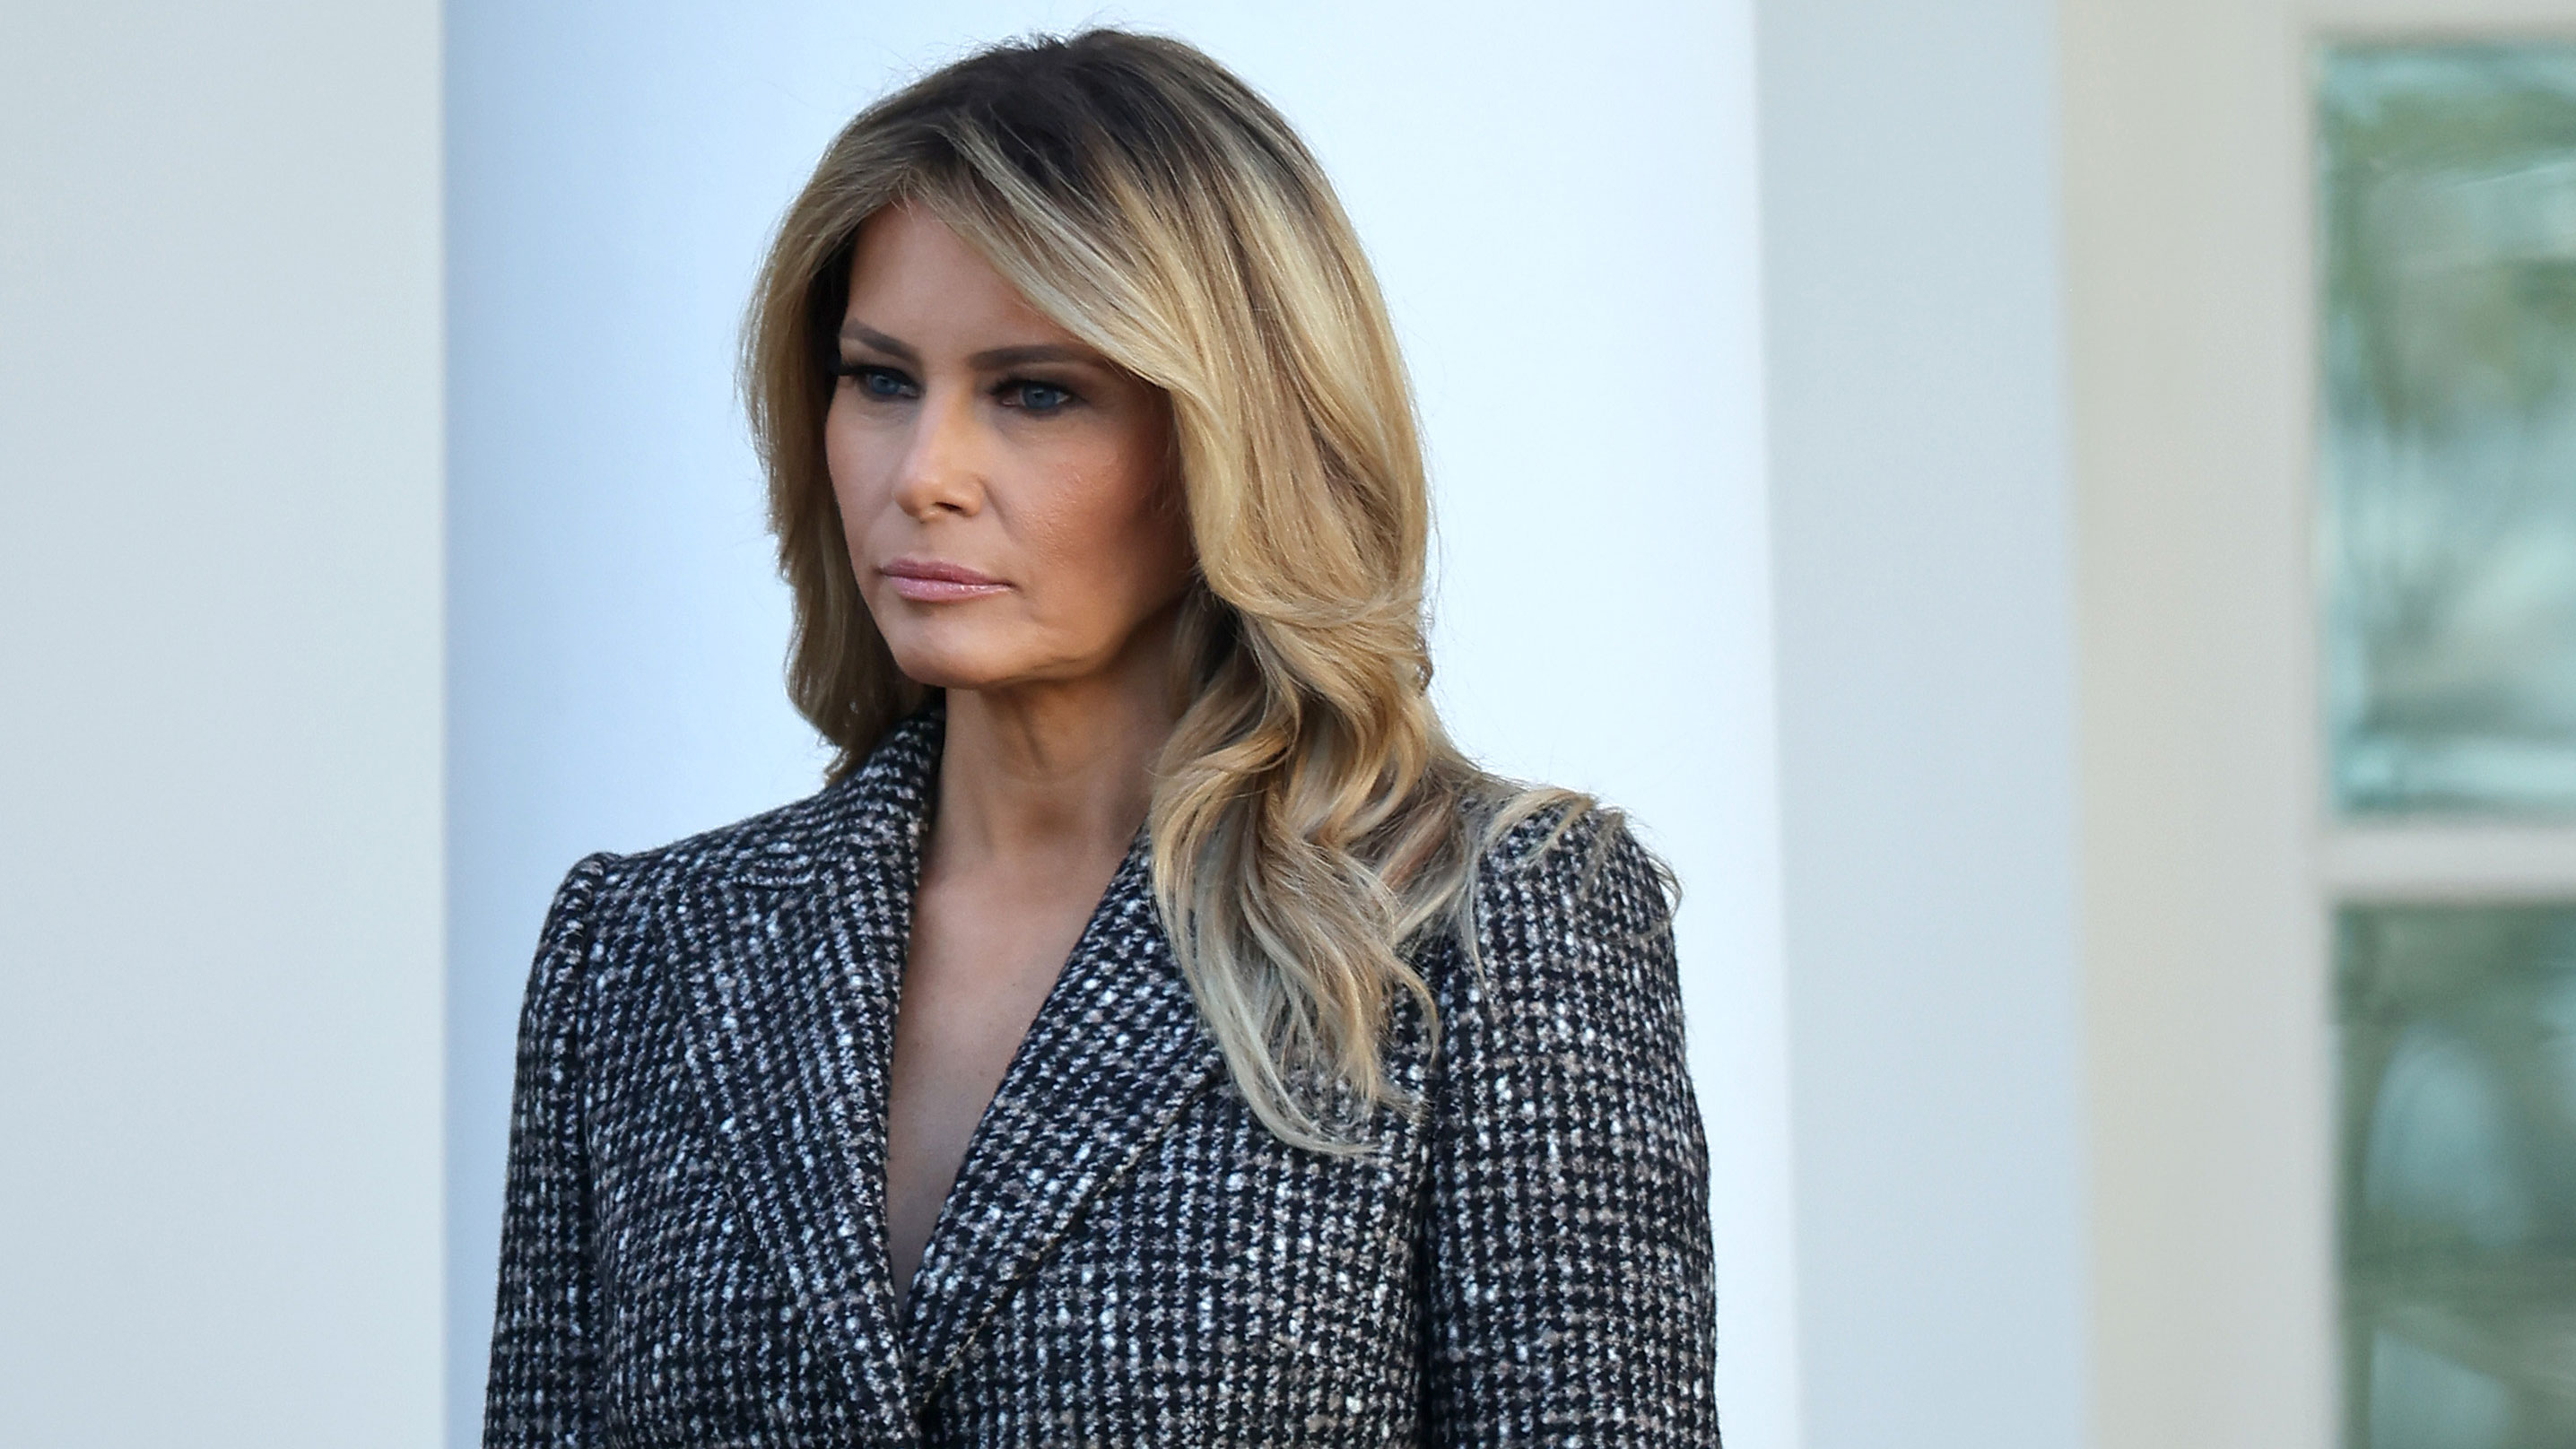 First lady Melania Trump attends an event at the White House on November 24, 2020.